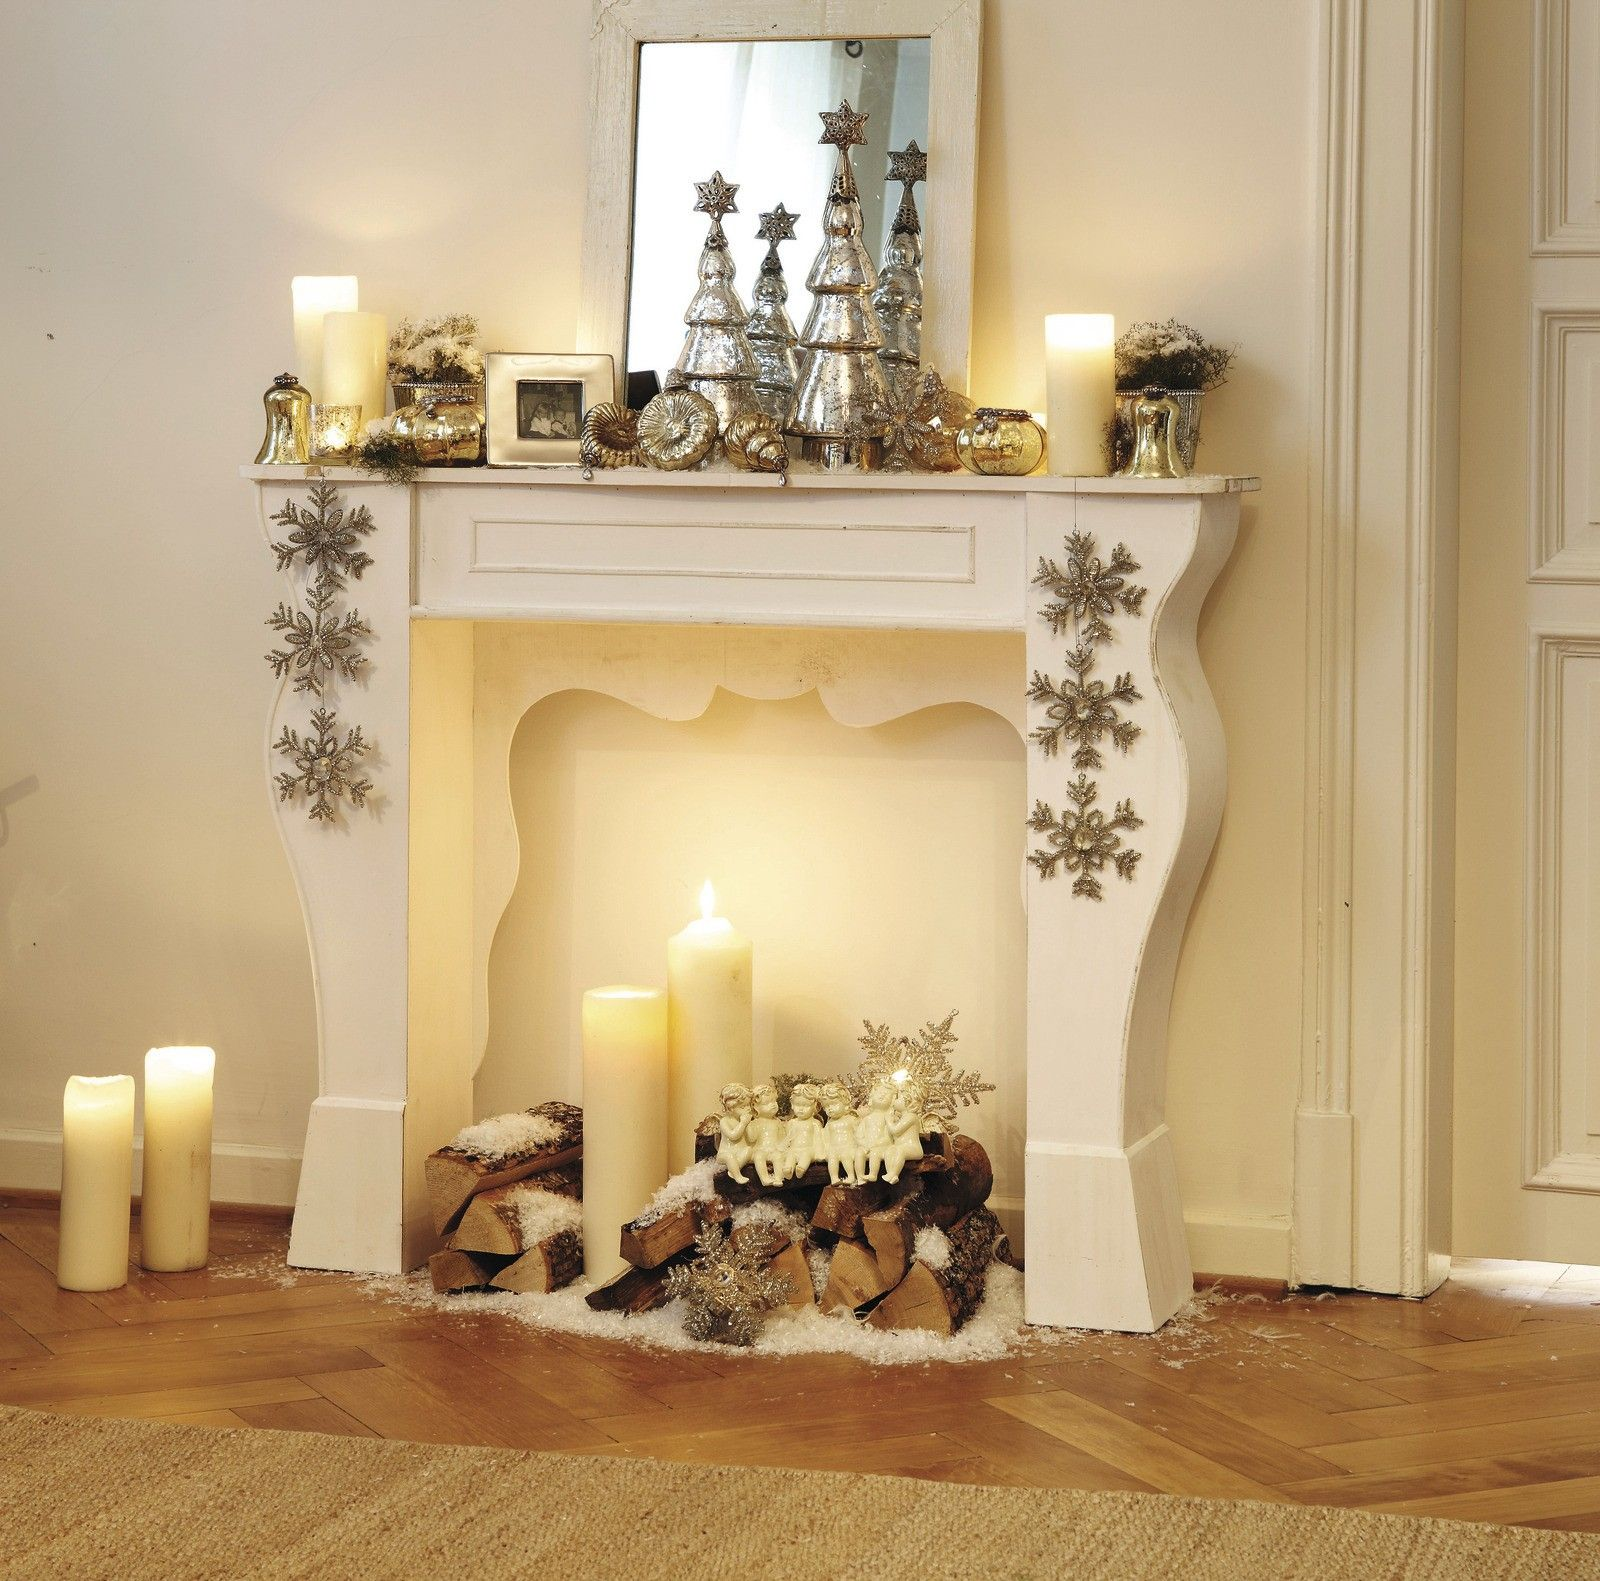 Wohnzimmer Im Landhausstil An Weihnachten Love Decorate All Year Design Kaminkonsole